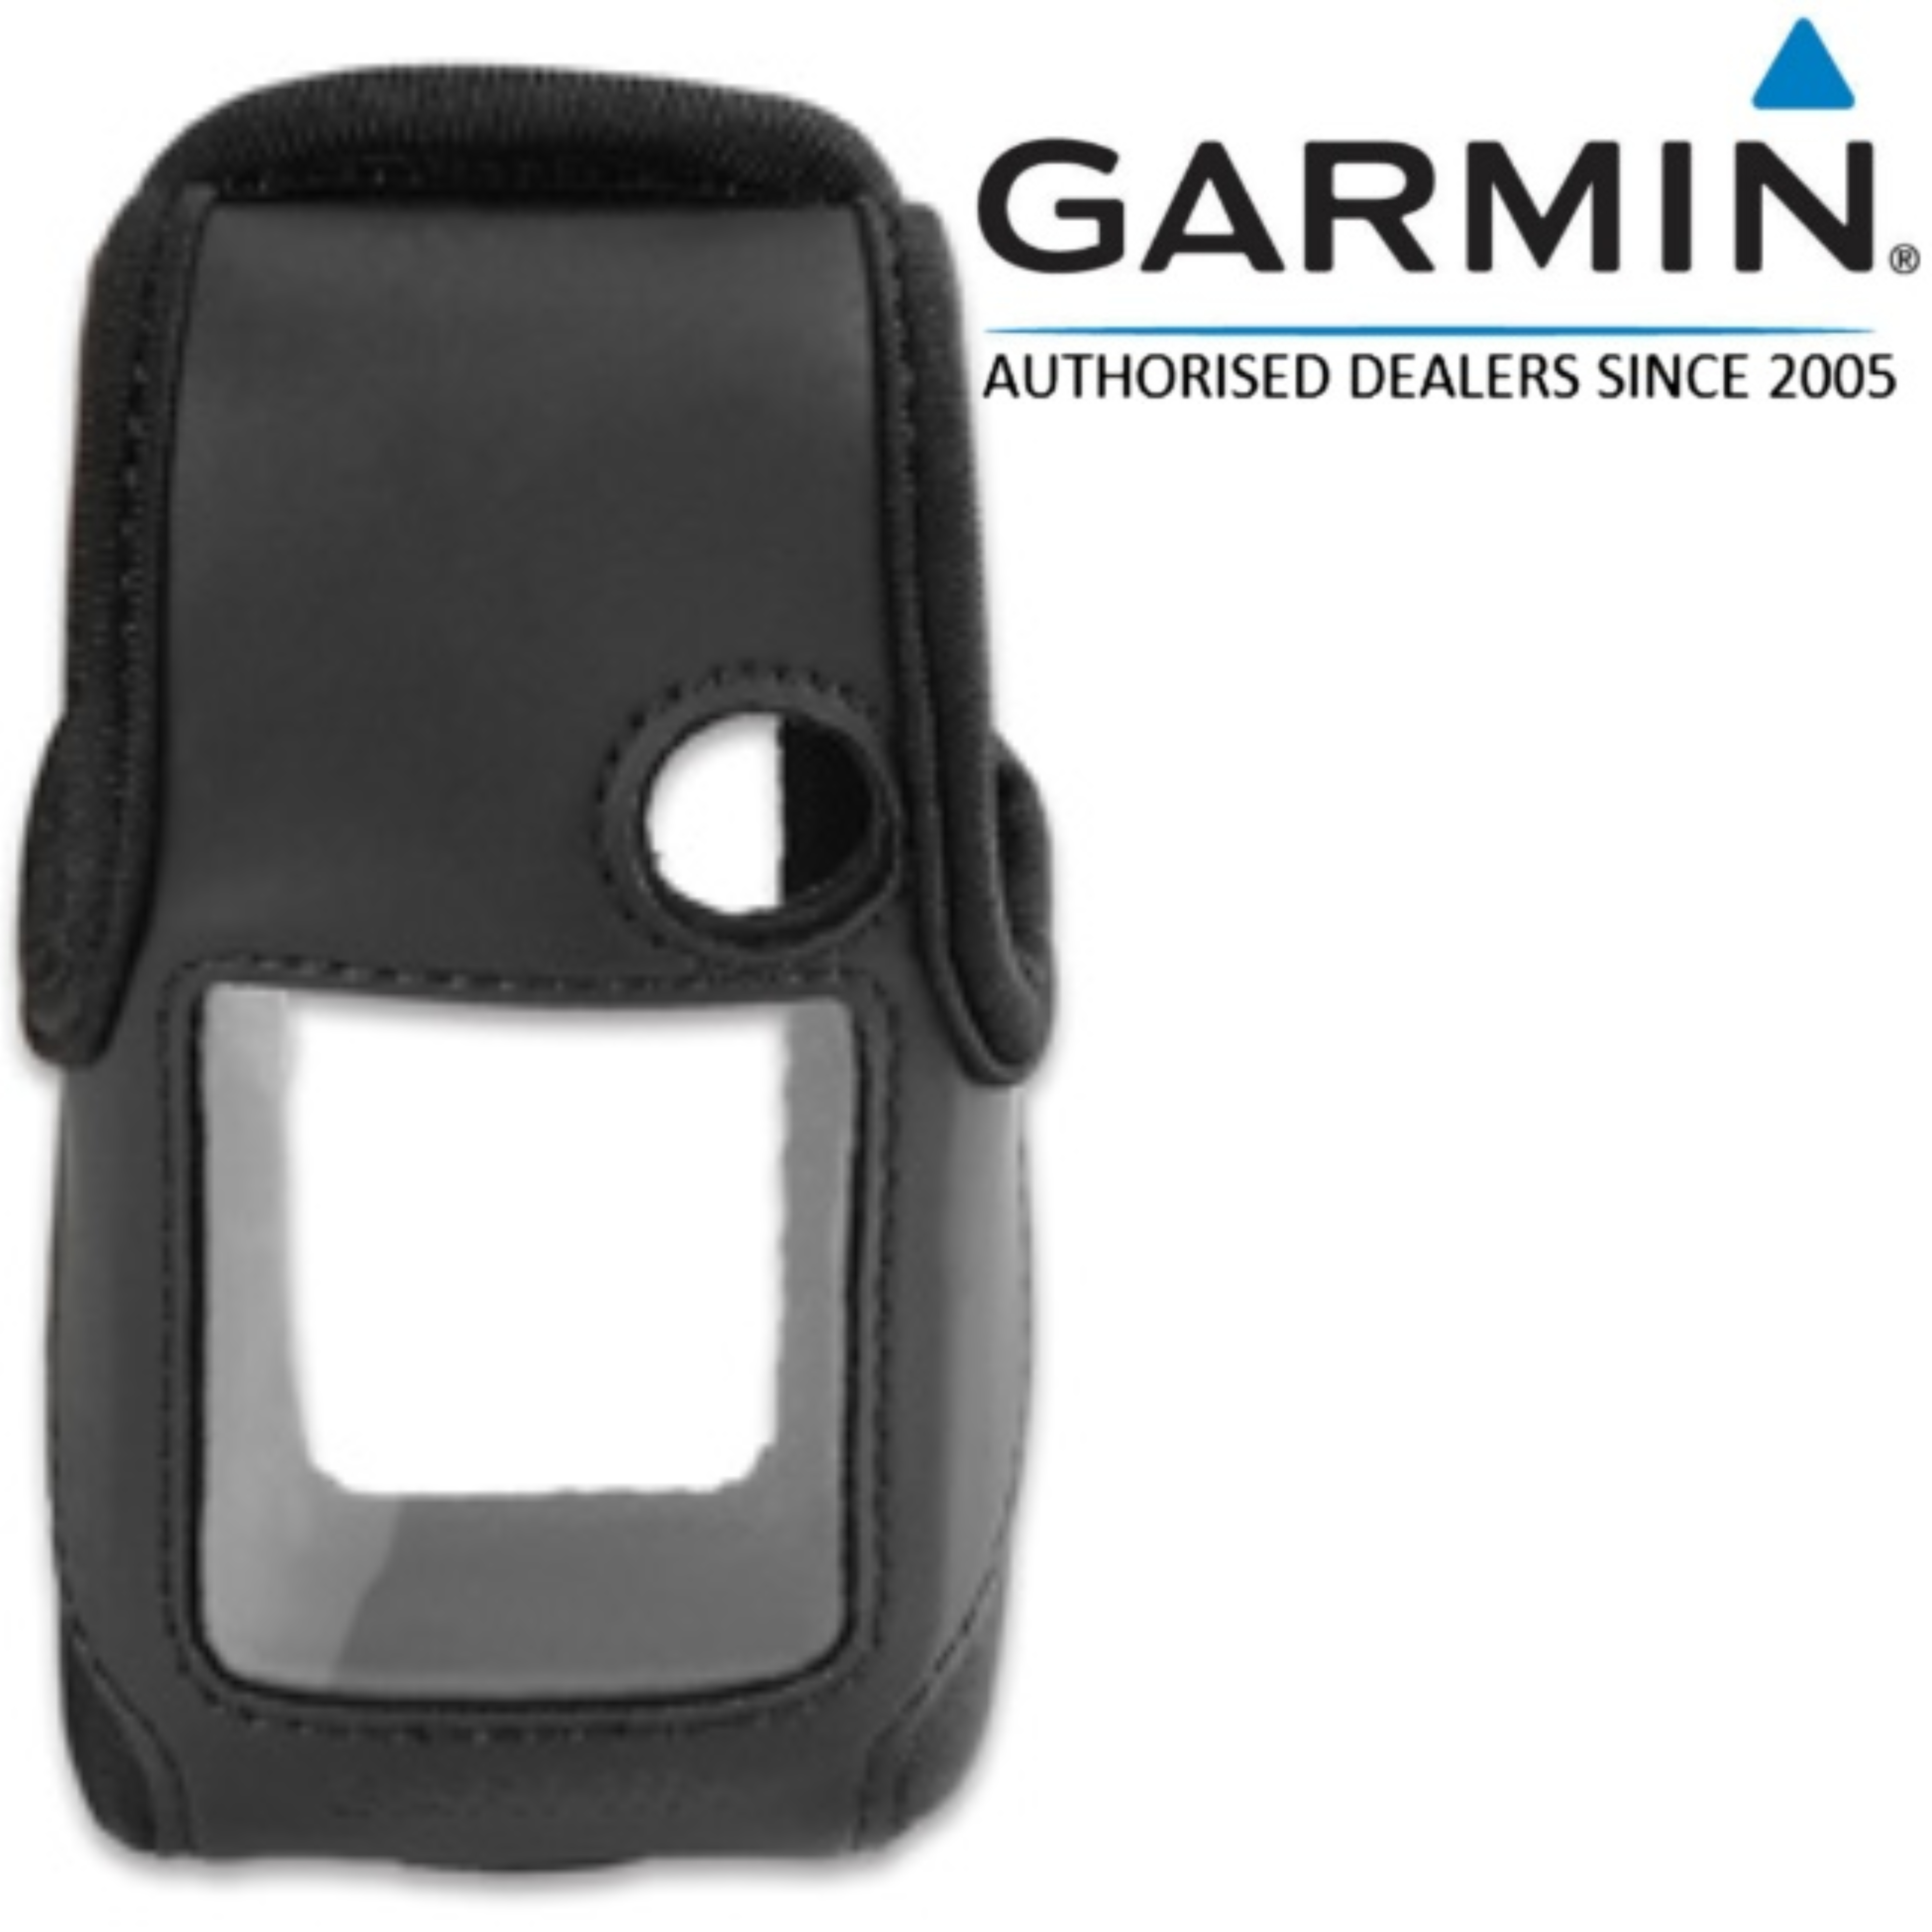 Garmin Carrying Case | Protective Cover | For eTrex 10-20-20x-30-30x  Handheld GPS